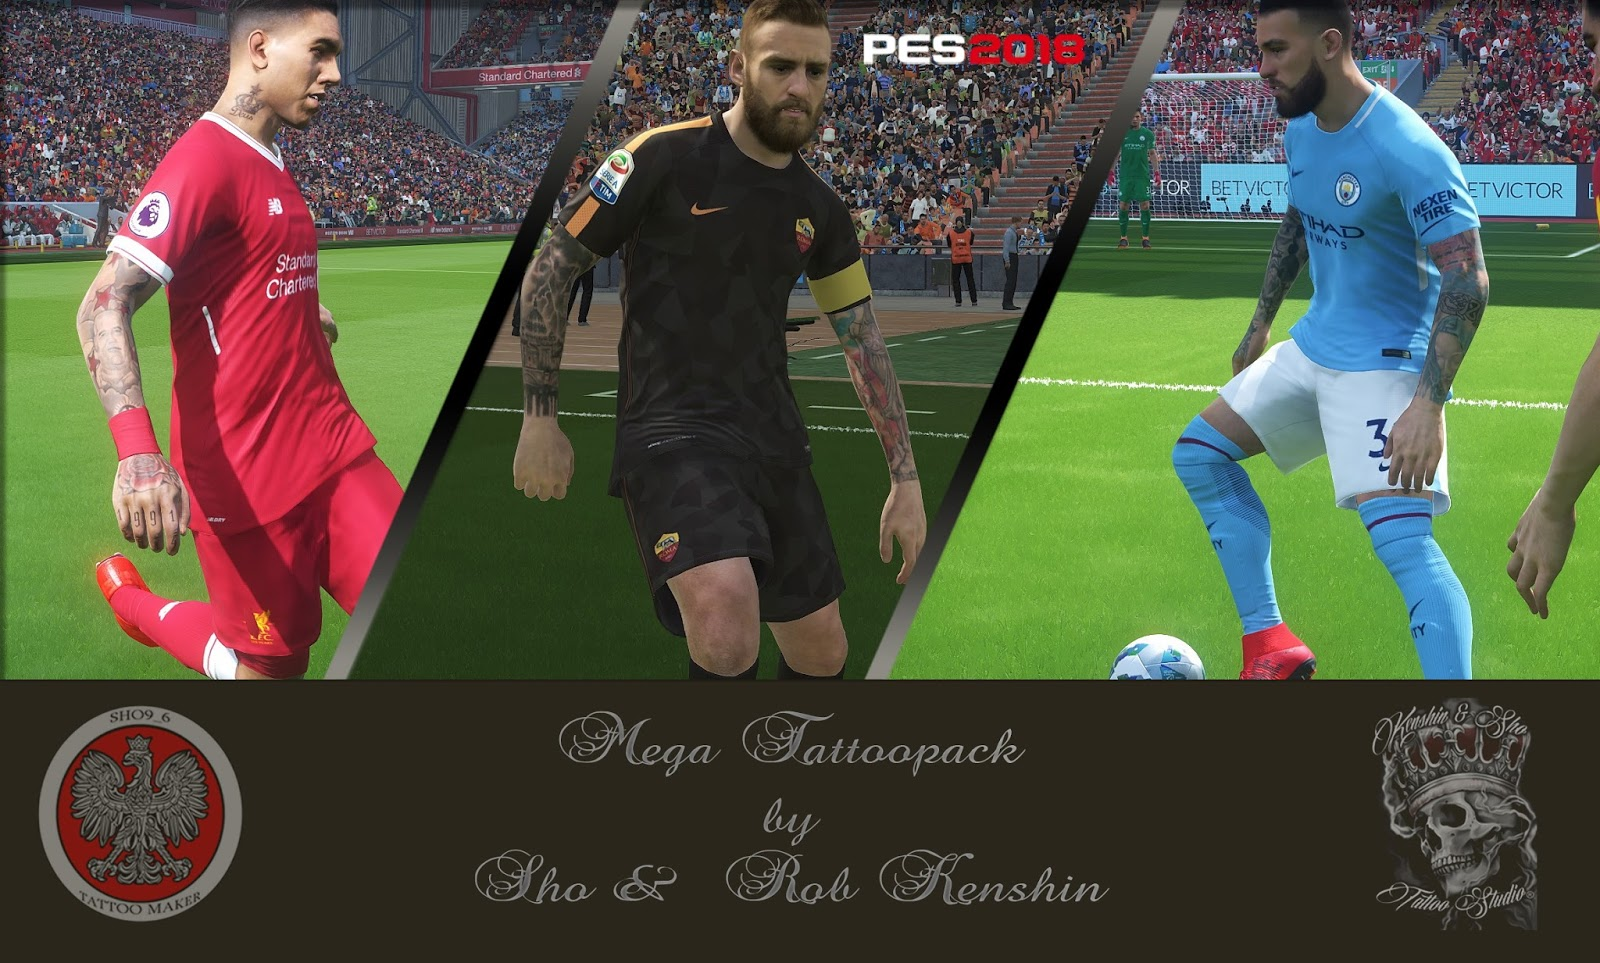 PES 2018 Mega Tattoopack  67 Players by Sho9_6